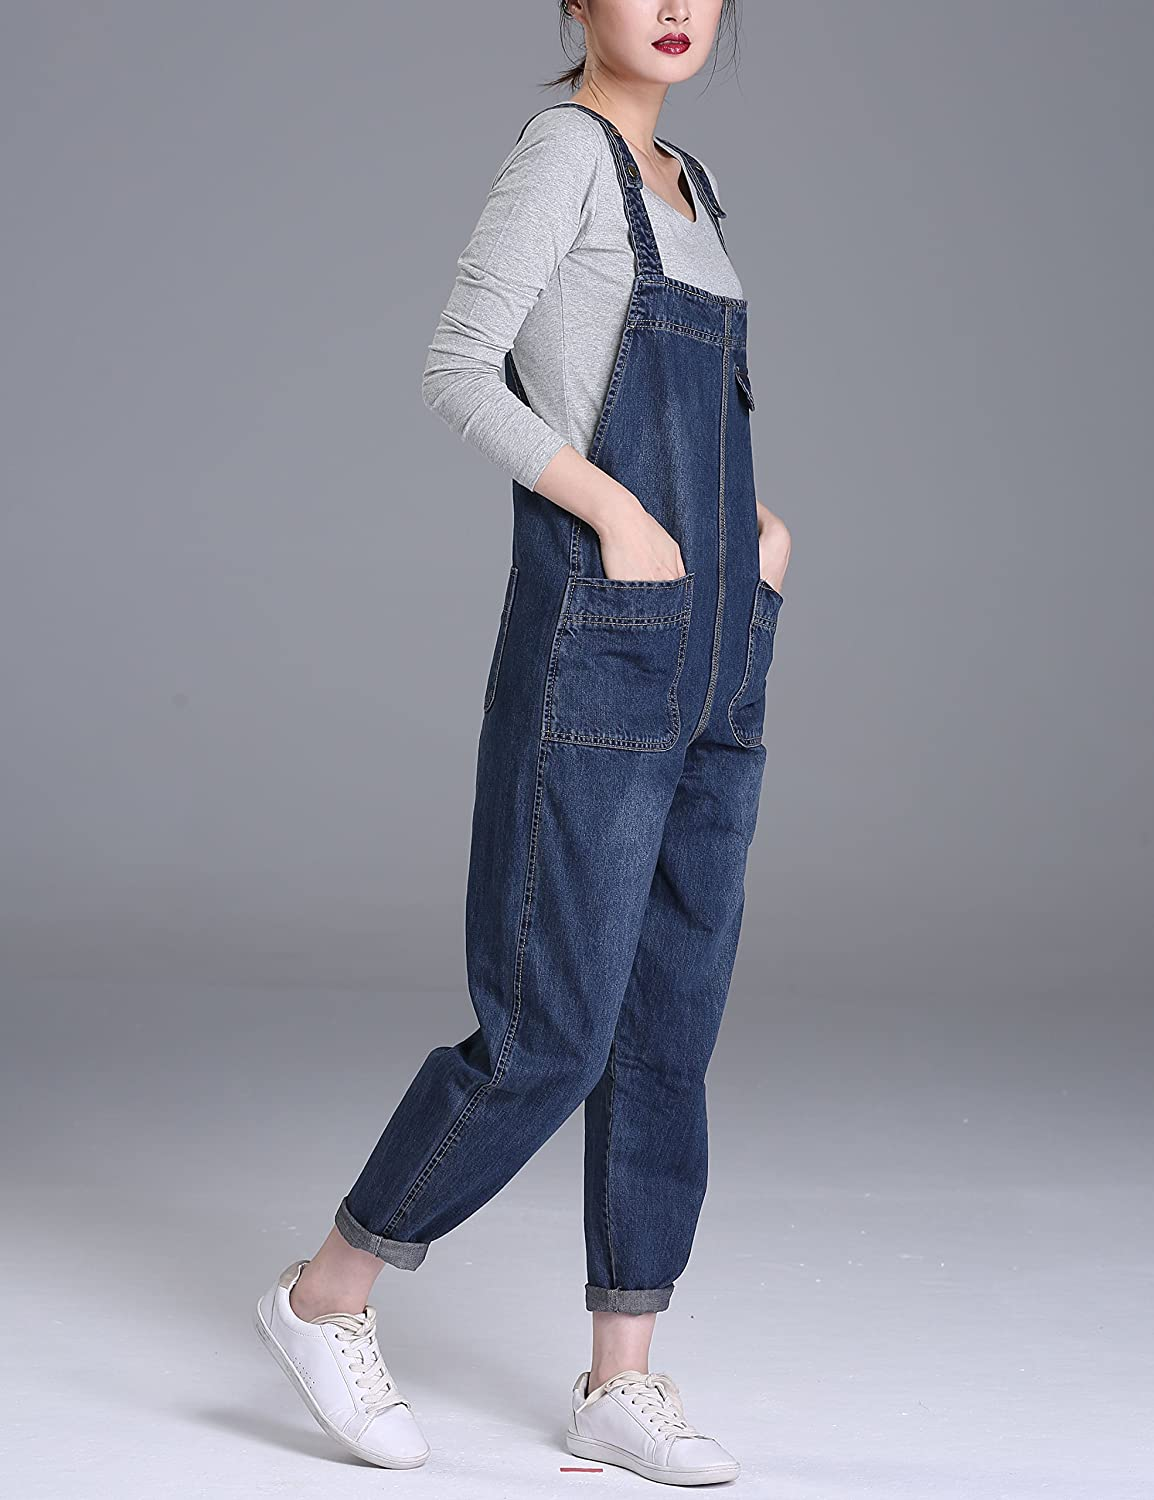 Yeokou Womens Casual Denim Bib Cropped Overalls Pant Jeans Jumpsuits